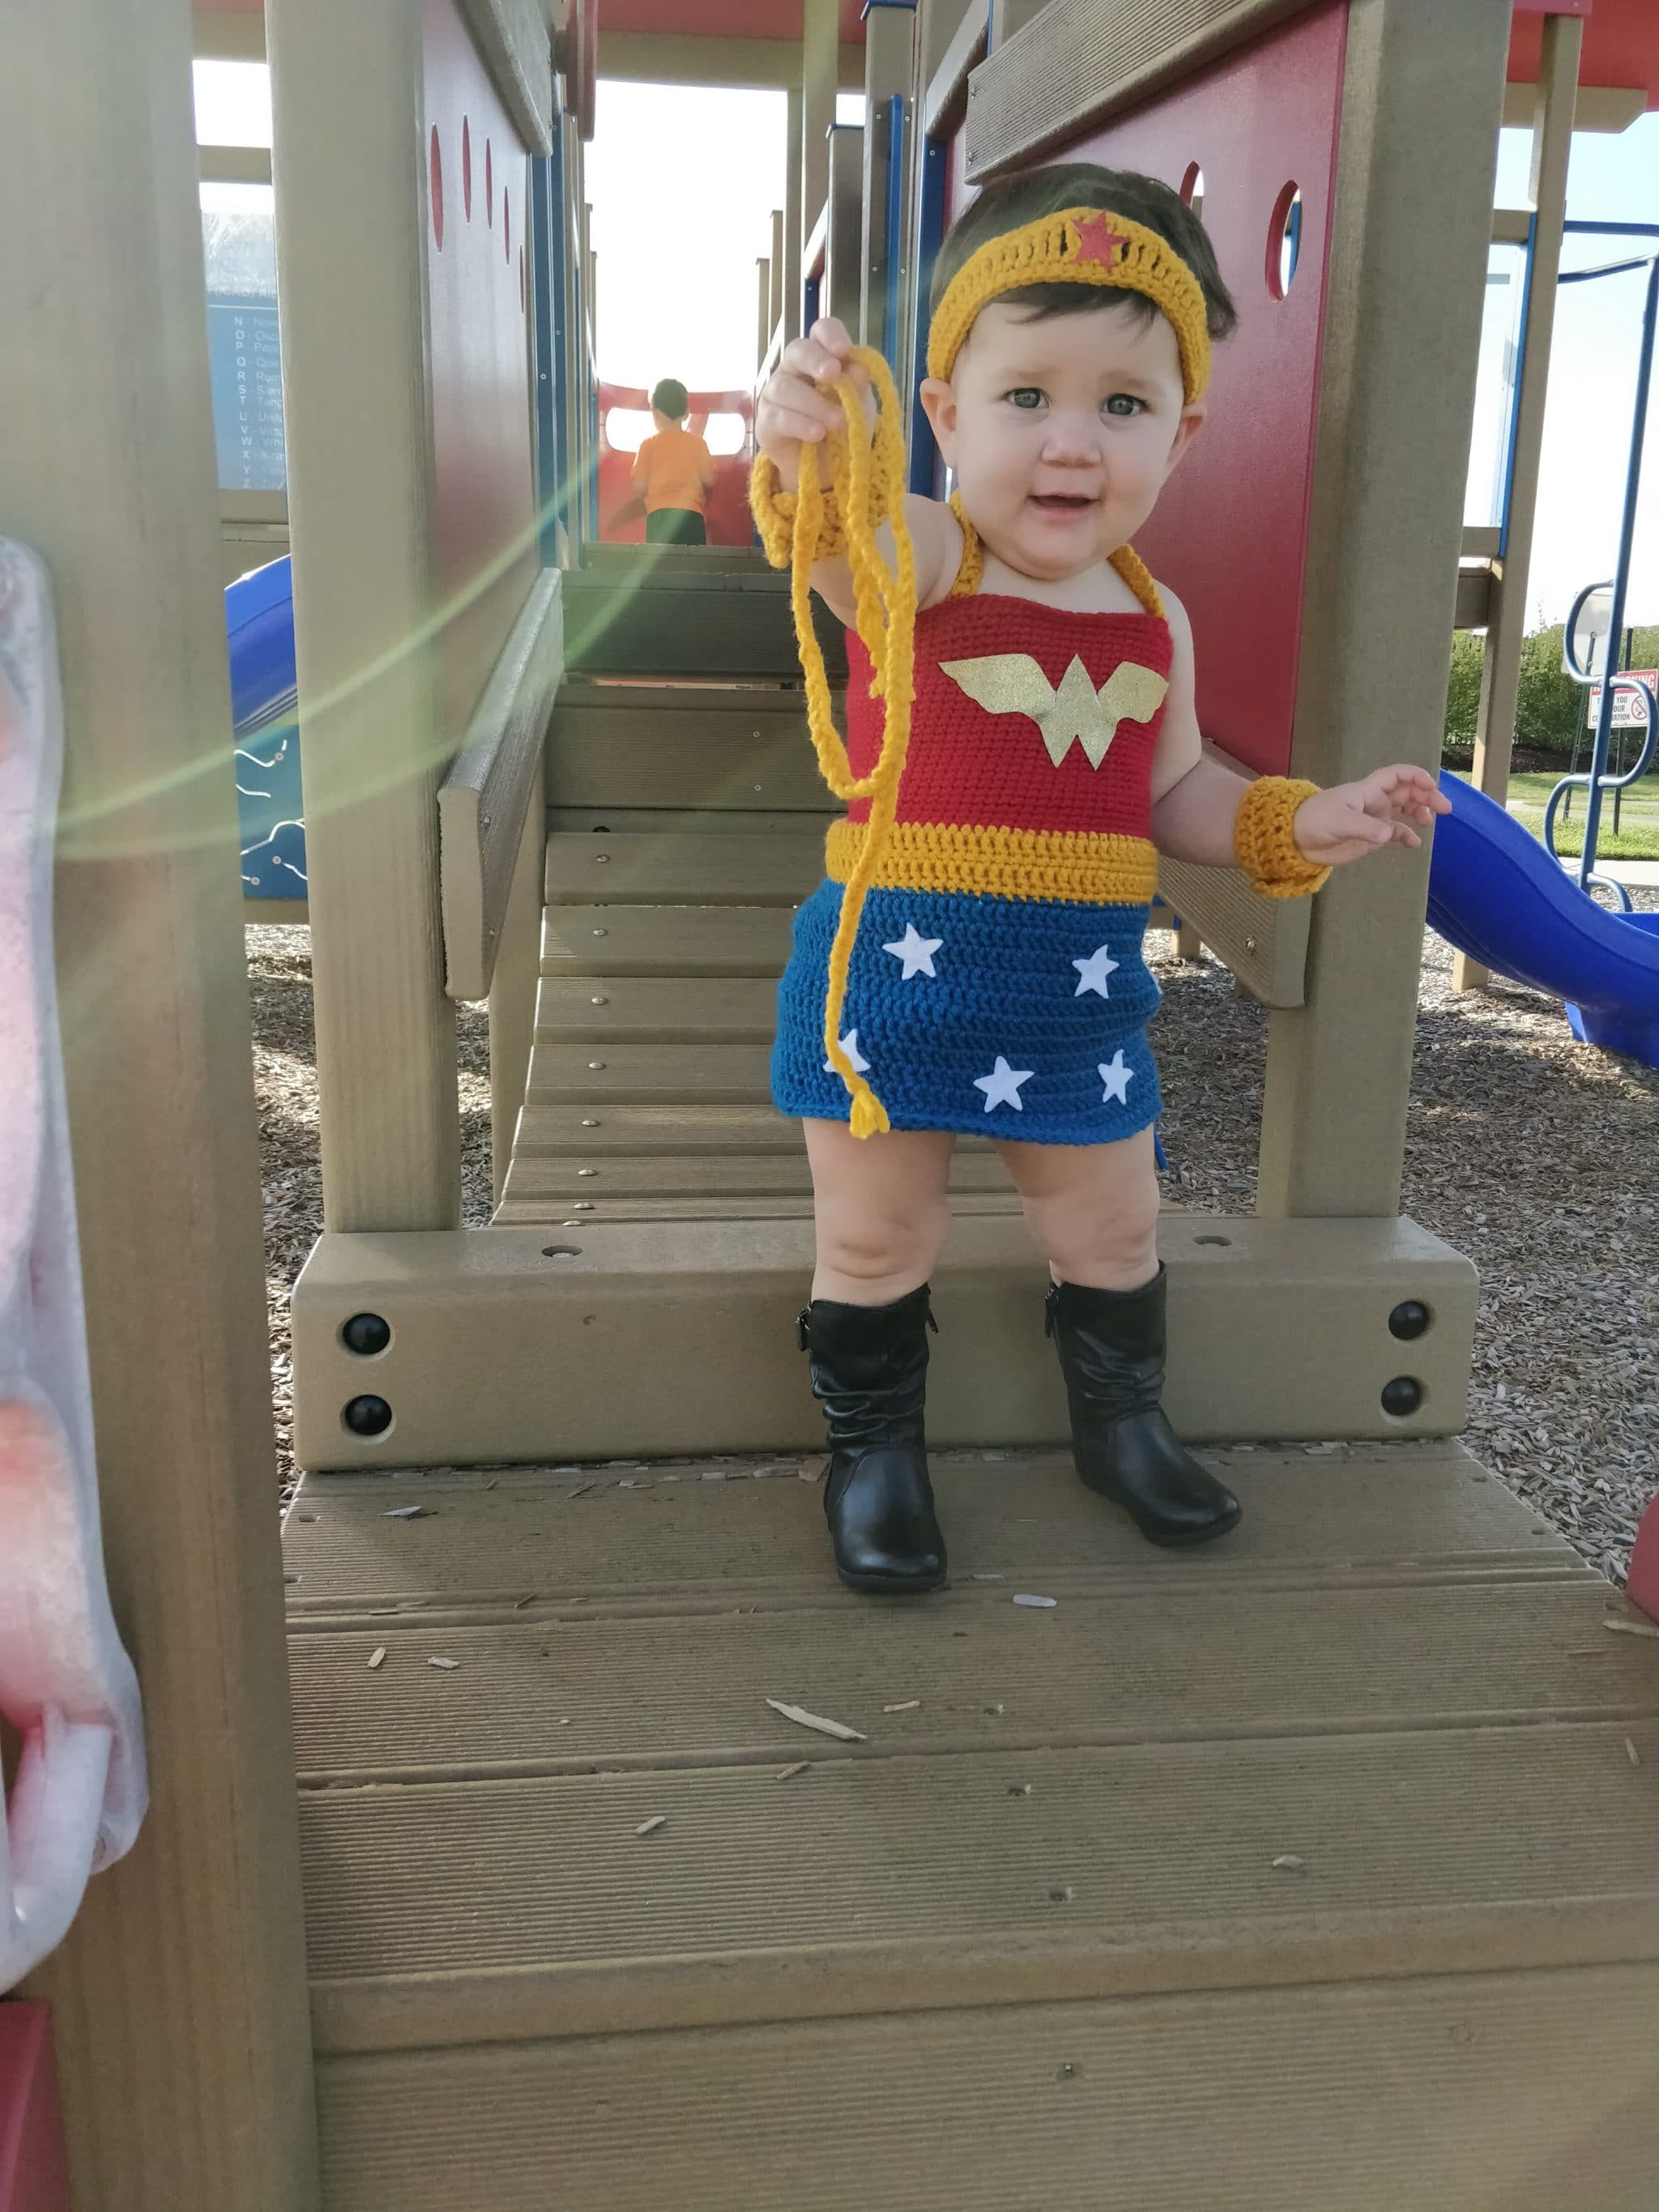 Little girl at the playground wearing wonder woman outfit showing off her lasso of truth